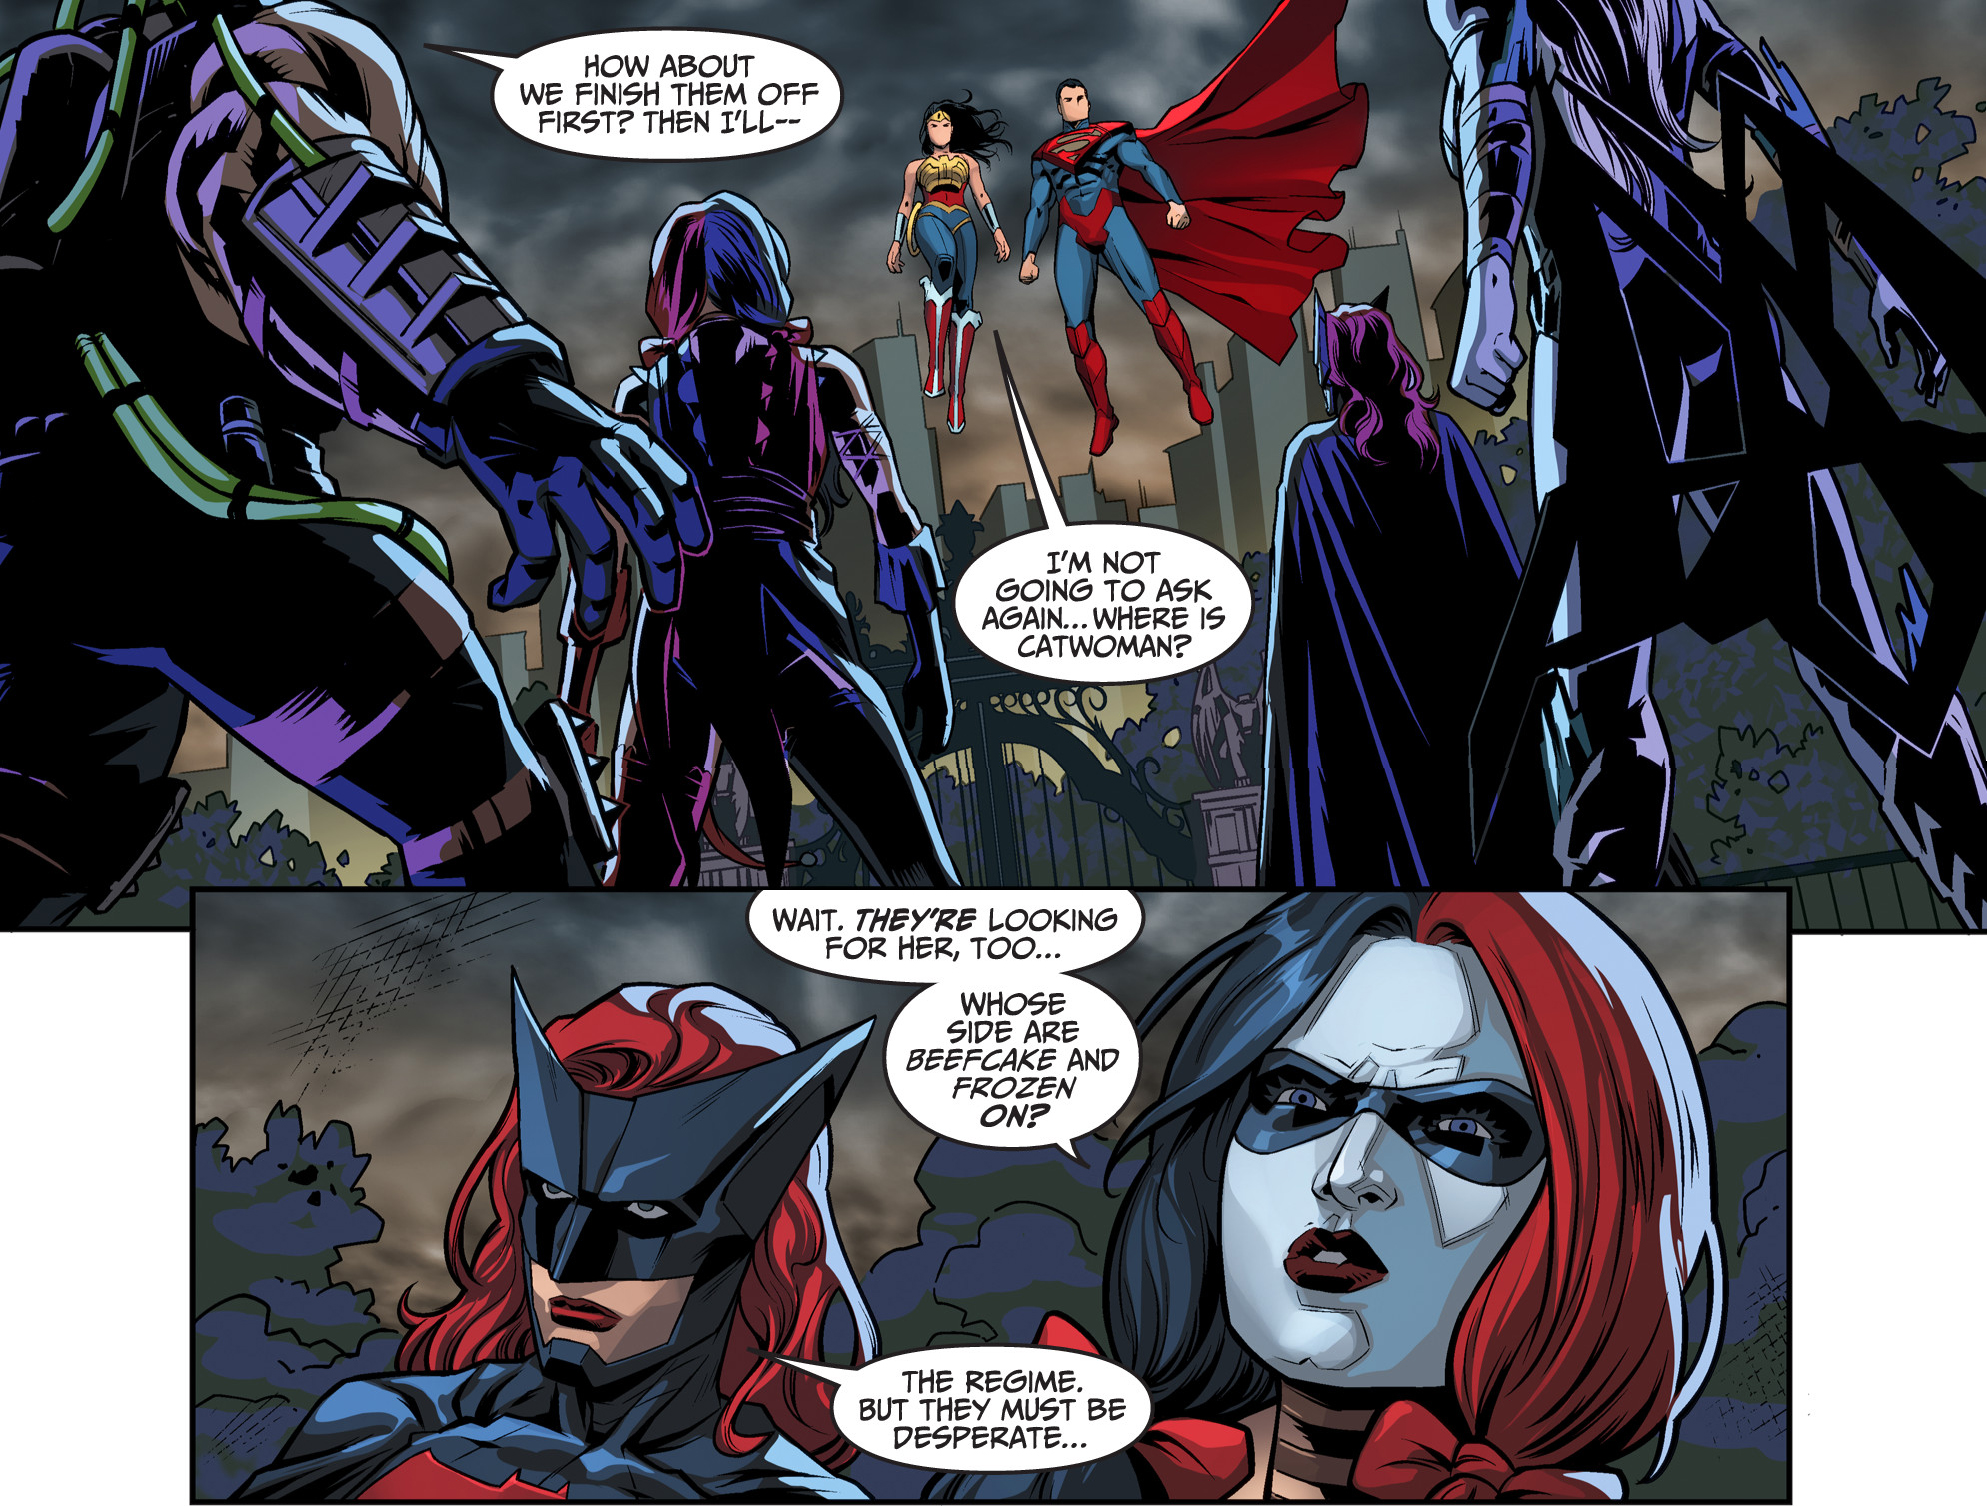 batwoman and harley quinn vs bane and killer frost vs superman and wonder woman